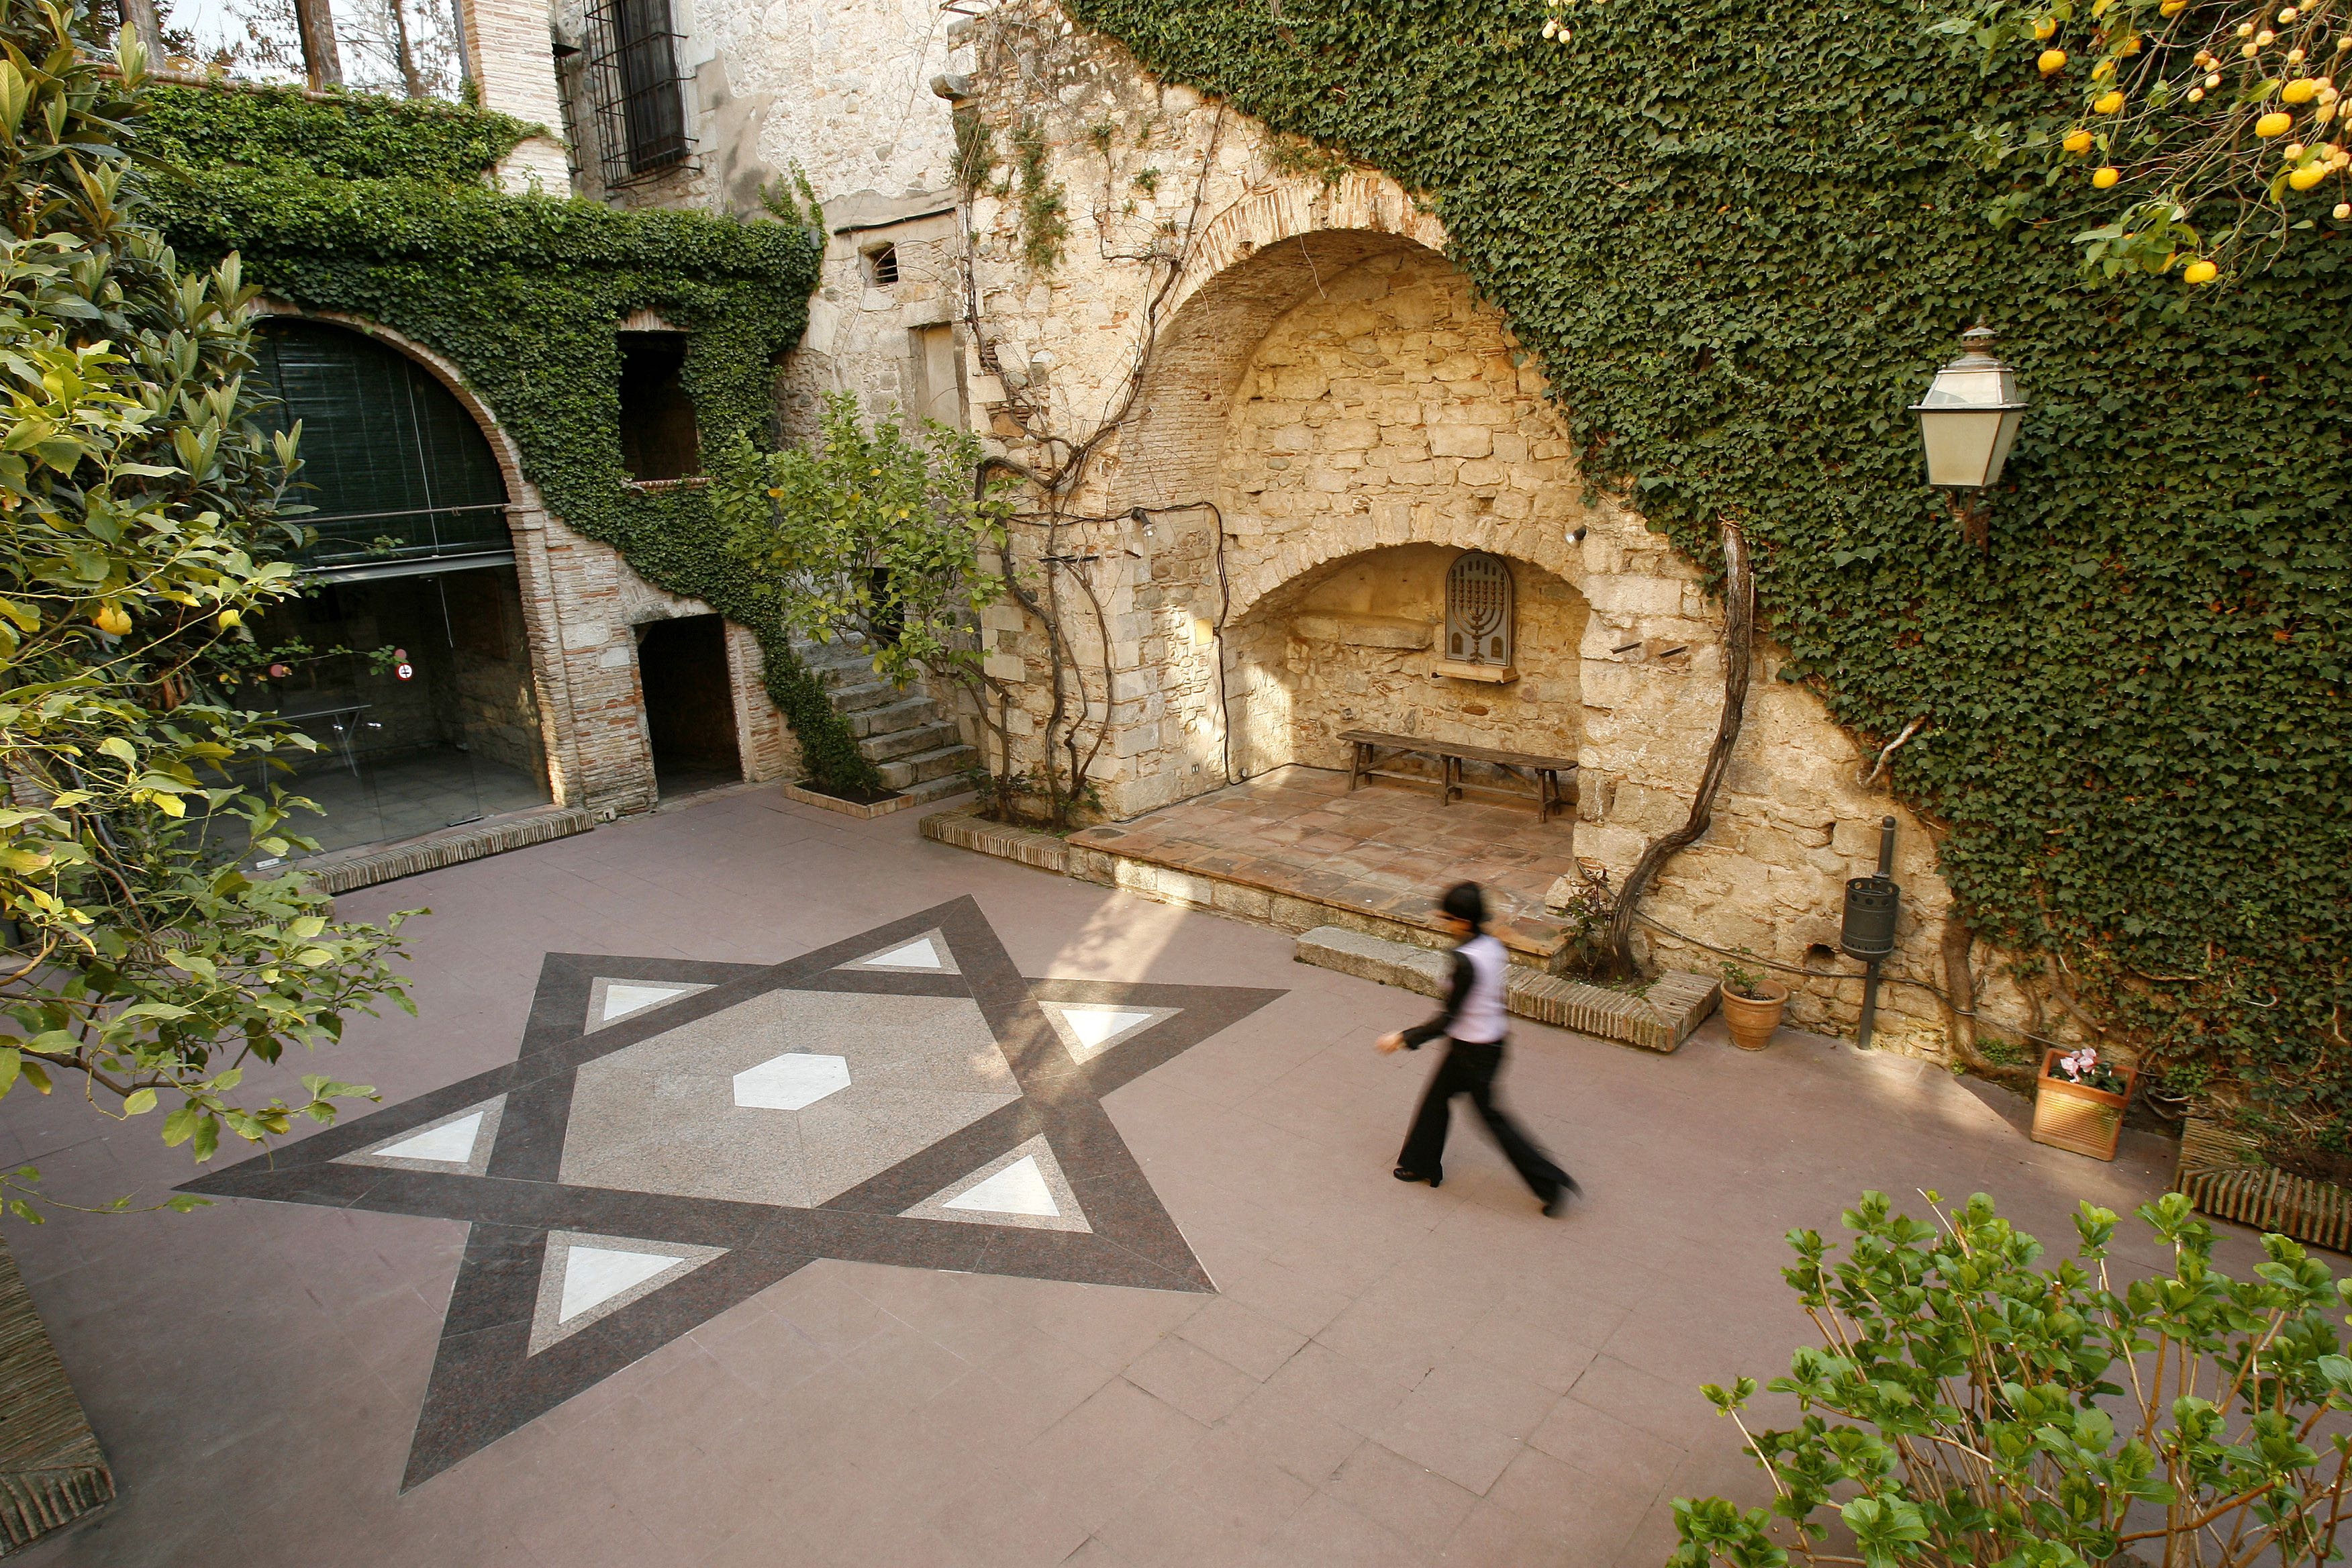 Sephardic Sepharad heritage Spain Girona El Call Jewish heritage sights in Spain